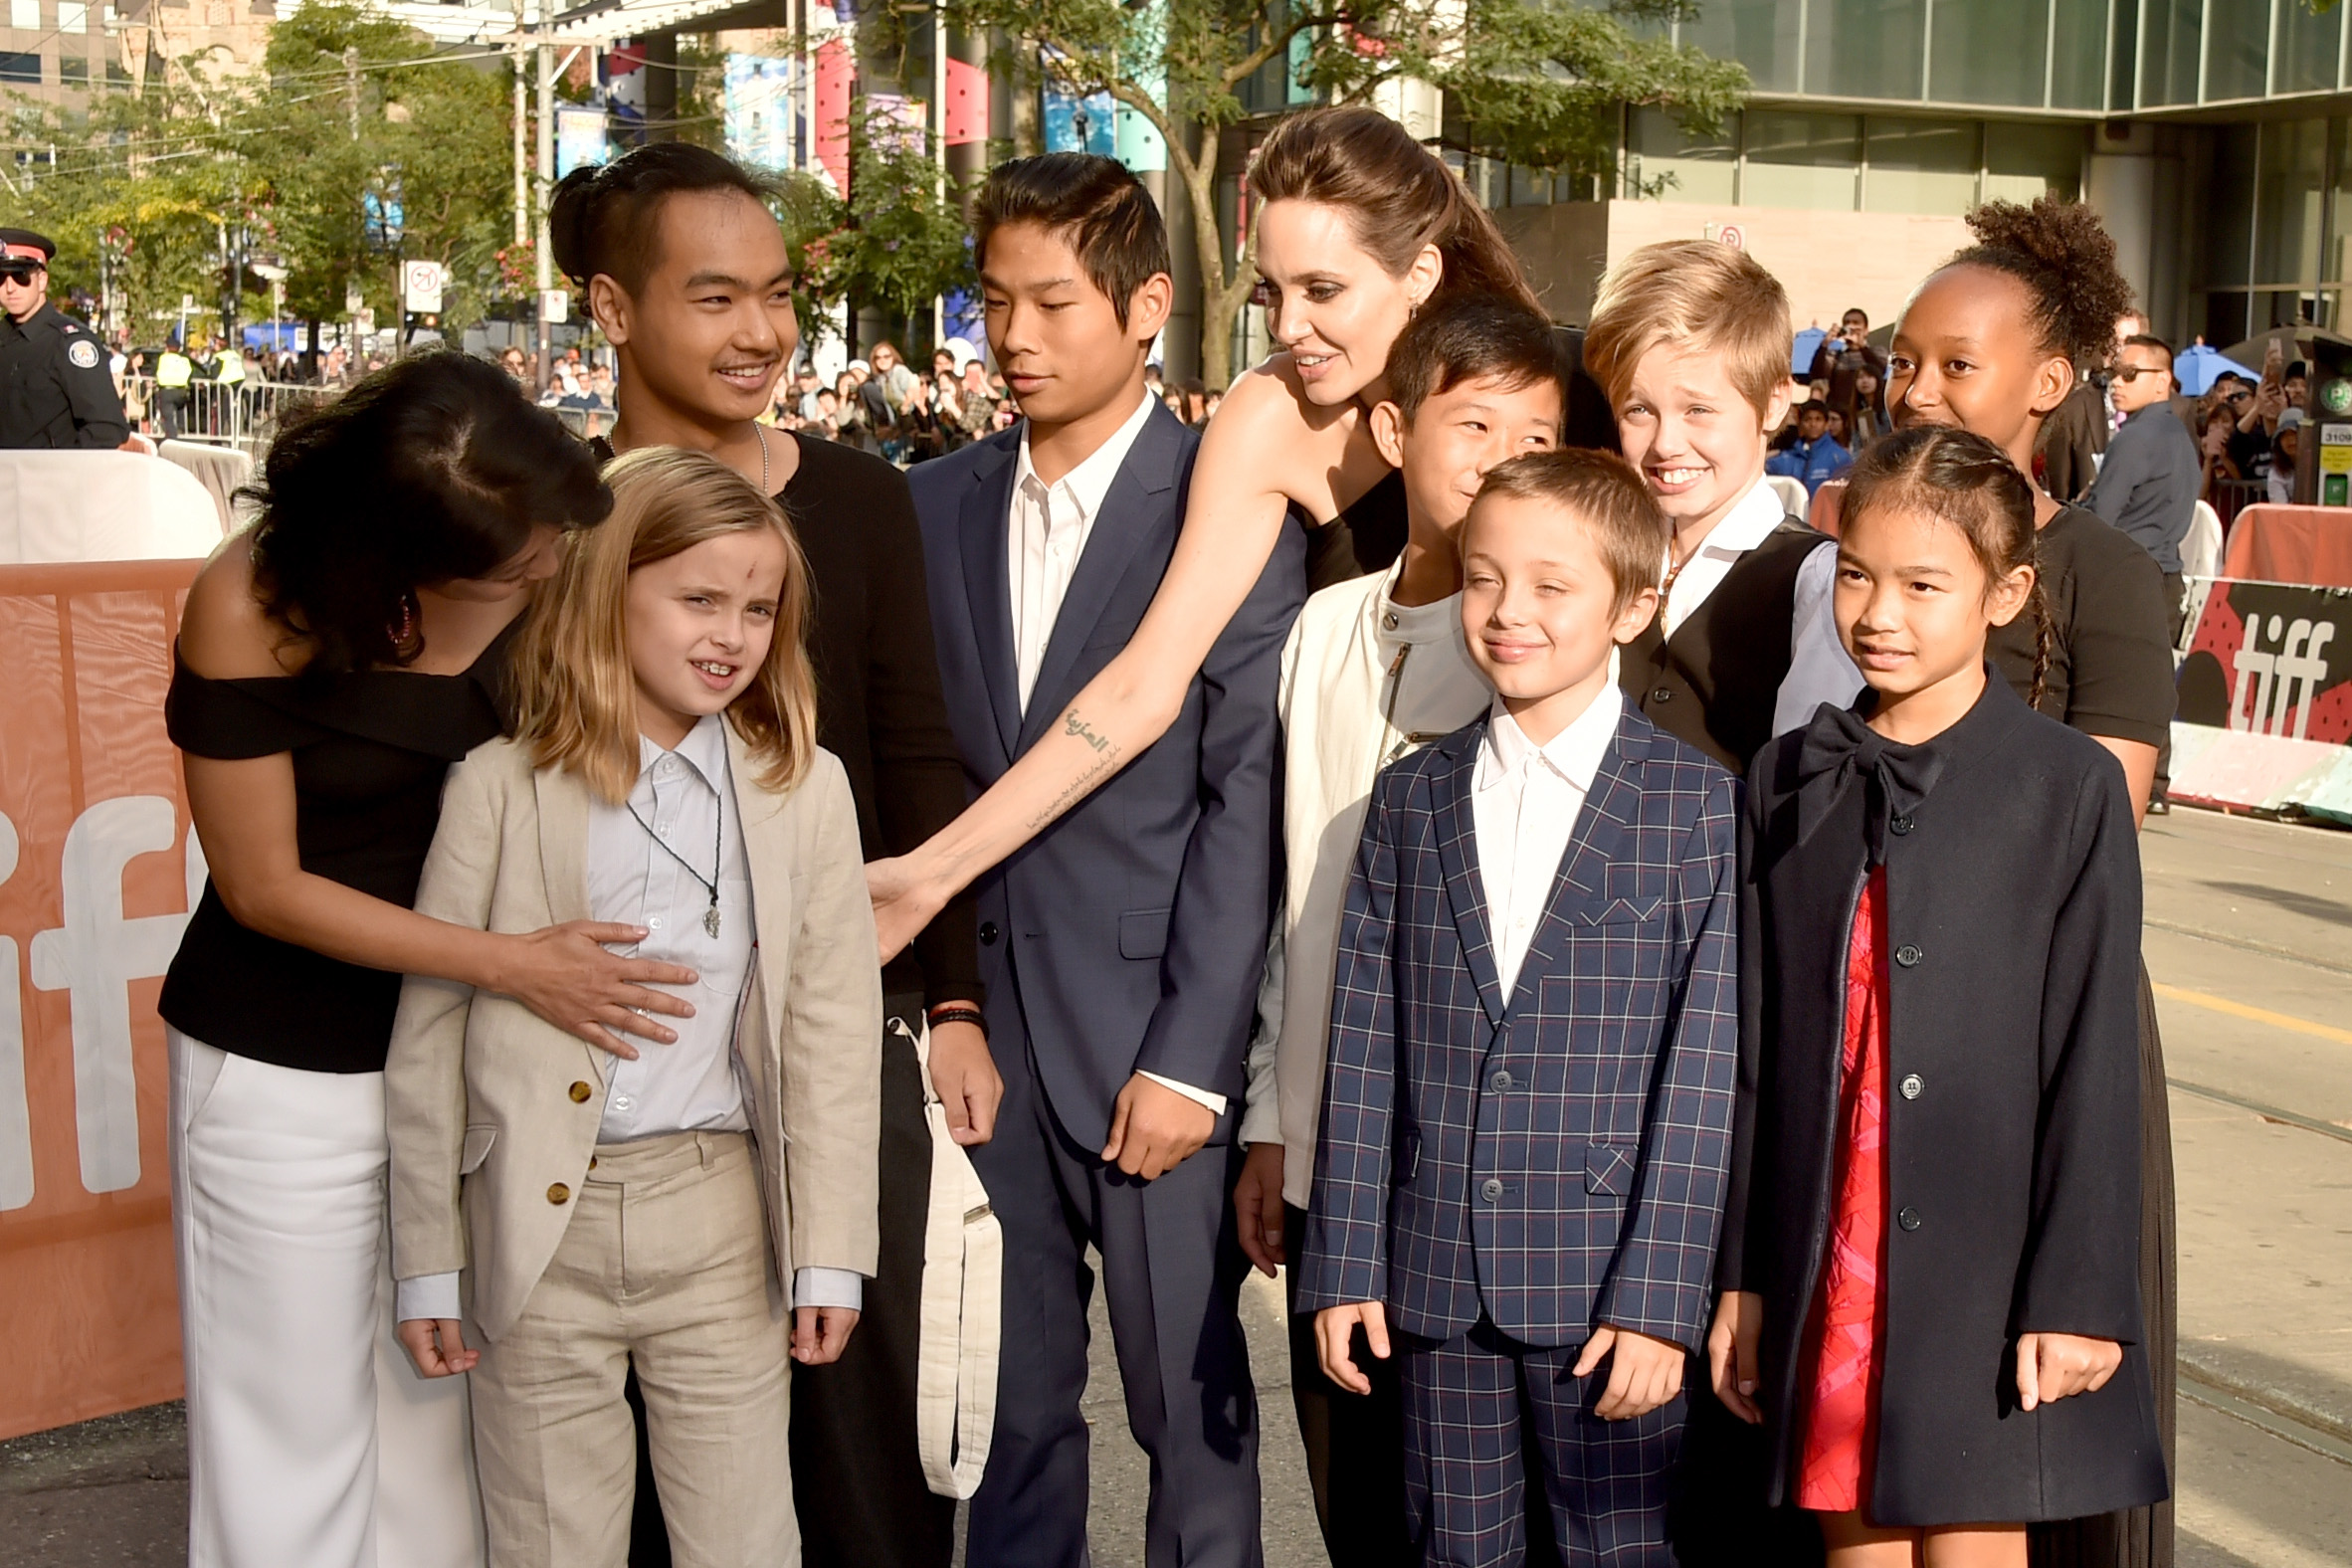 (L-R) Loung Ung, Vivienne Jolie-Pitt, Maddox Jolie-Pitt, Pax Jolie-Pitt, Angelina Jolie, Kimhak Mun, Knox Jolie-Pitt, Shiloh Jolie-Pitt, Zahara Jolie-Pitt and Sareum Srey Moch attend the 'First They Killed My Father' premiere during the 2017 Toronto International Film Festival at Princess of Wales Theatre on September 11, 2017 in Toronto, Canada. Source: Getty